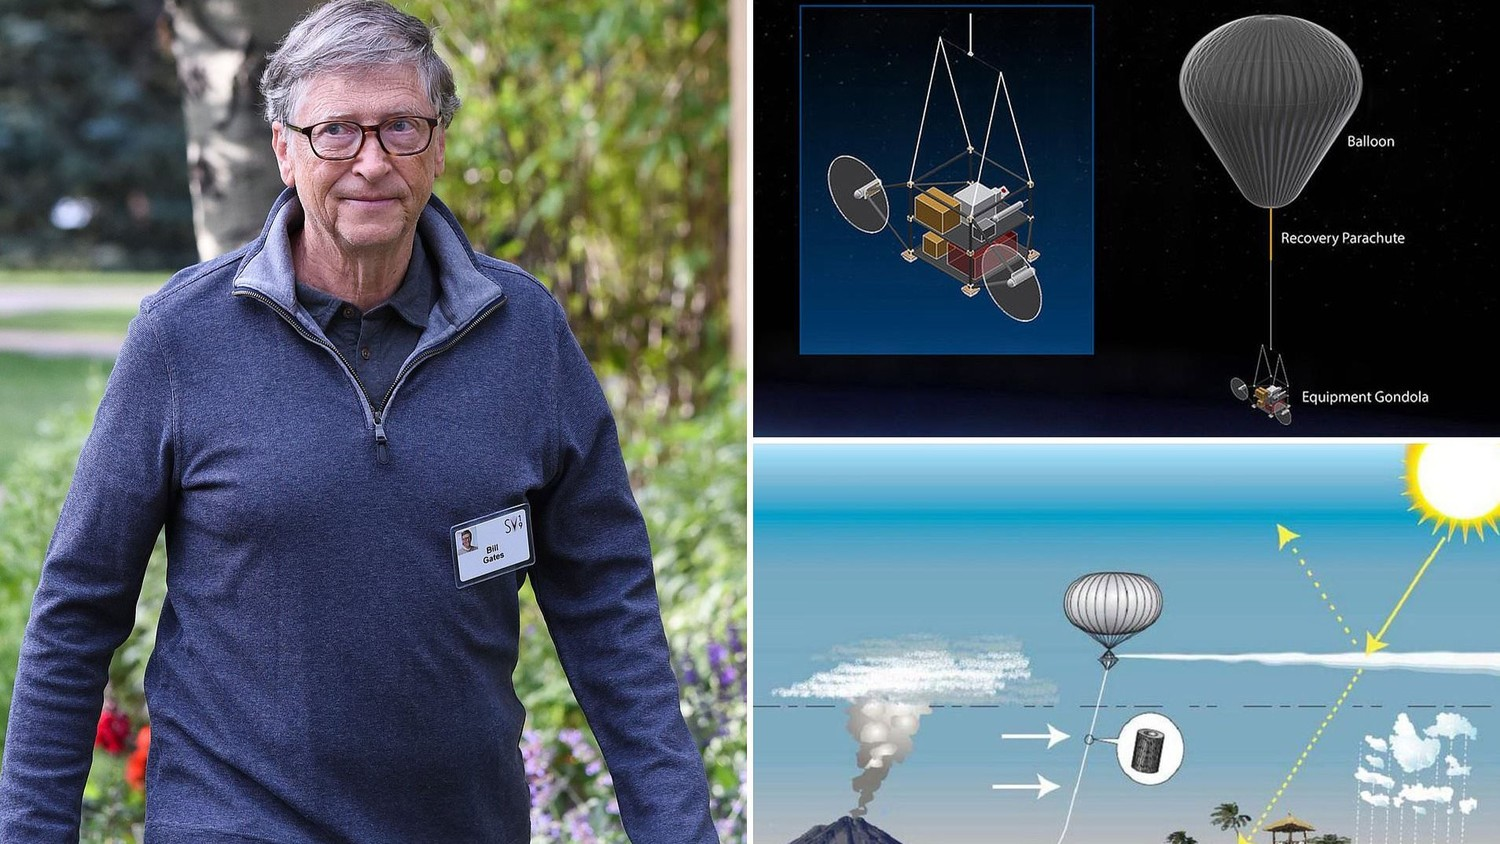 Bill Gates sun blocking project could lead to human extinction